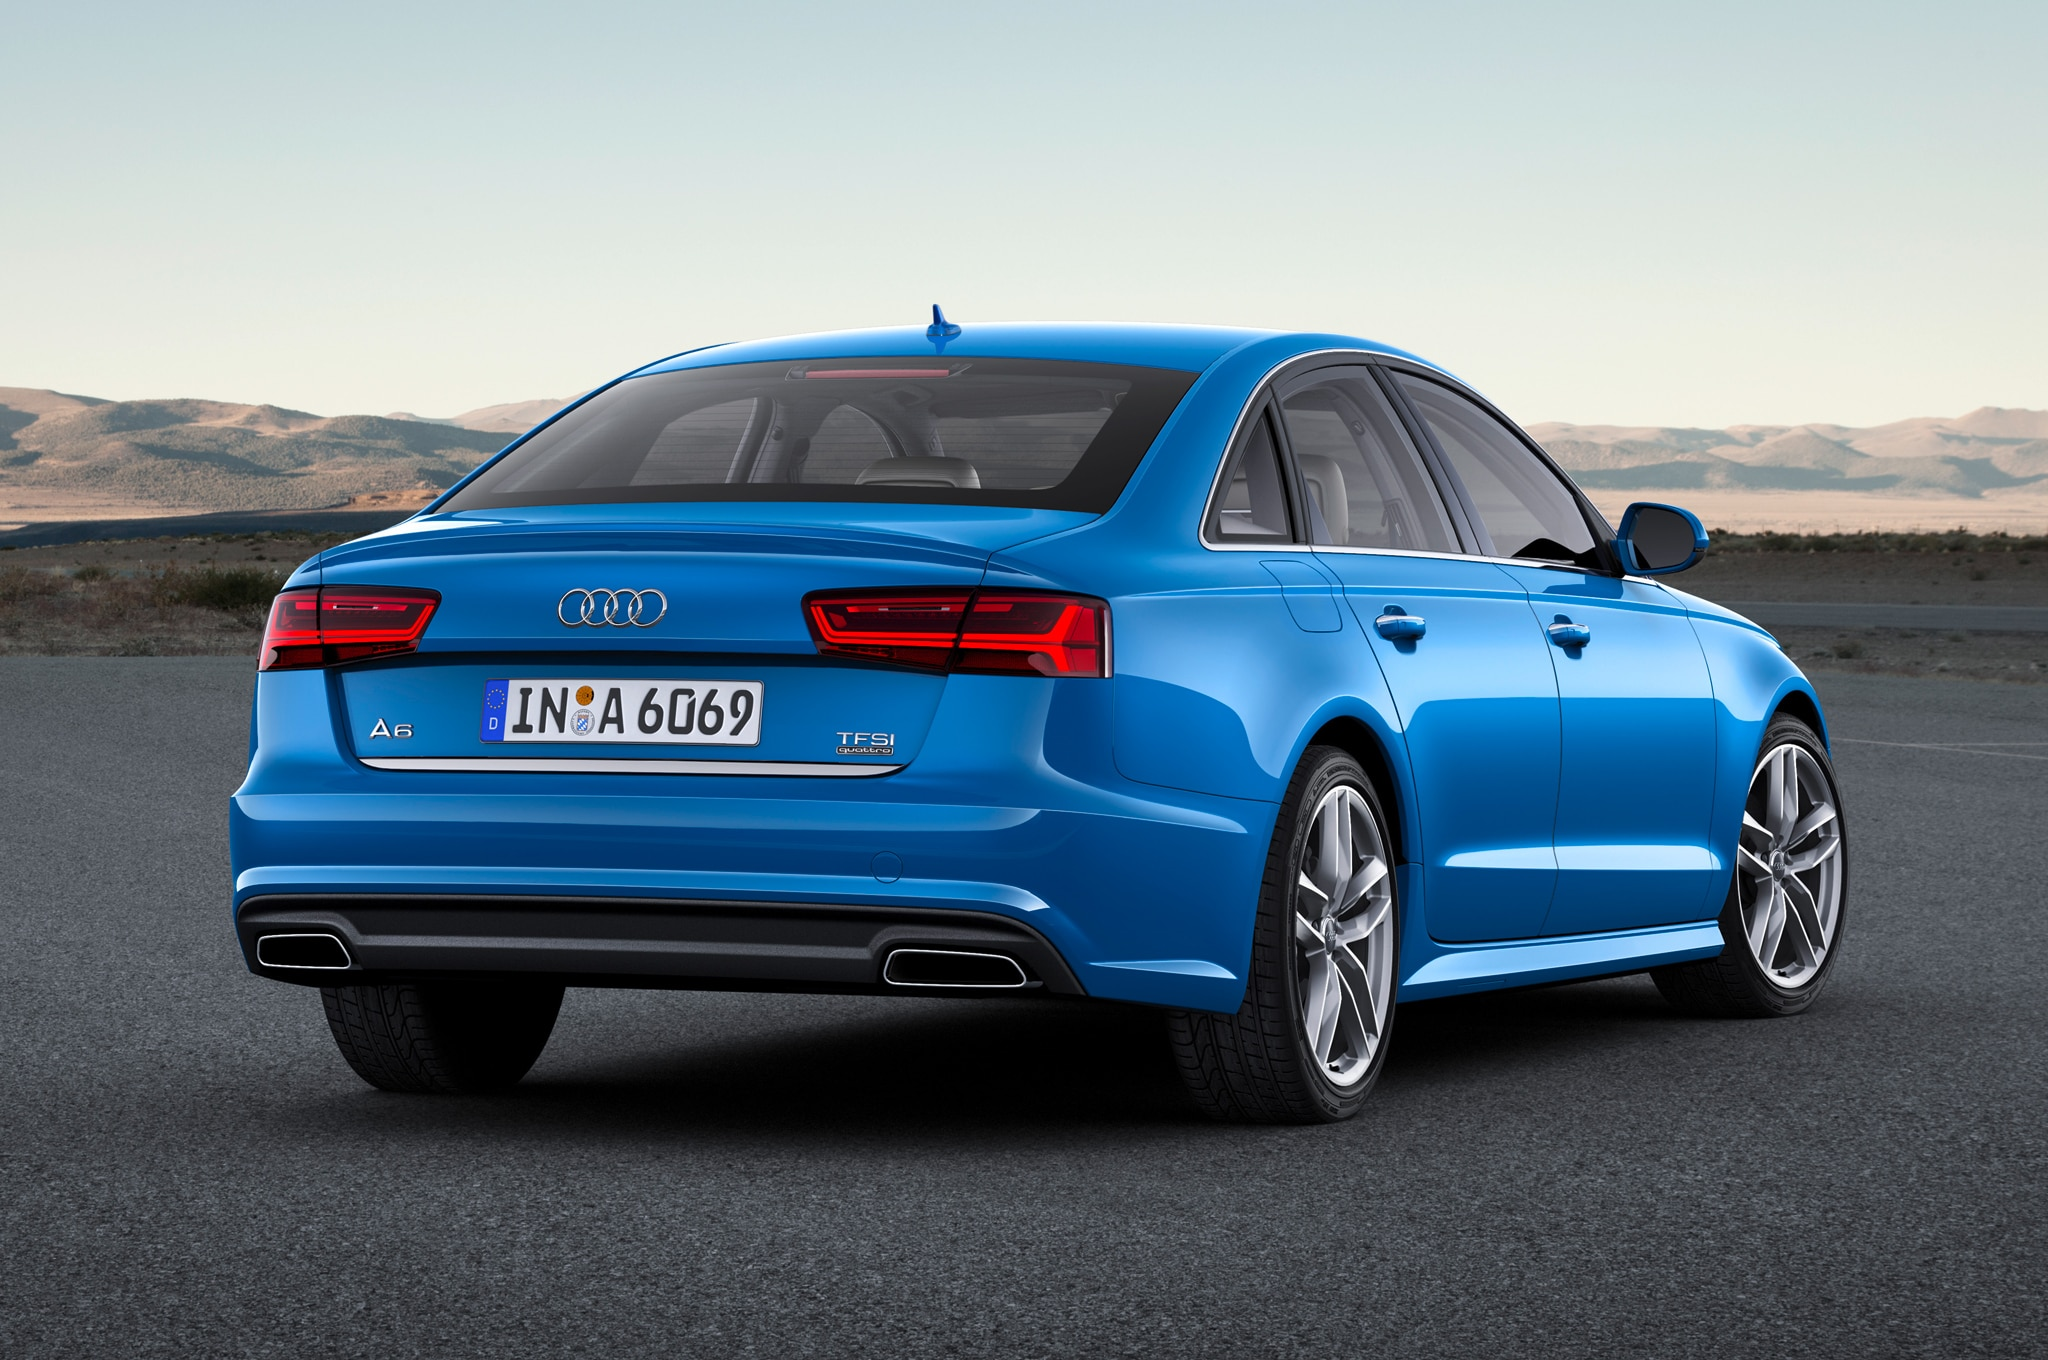 2017 audi a6 and a7 gain new tech and mild exterior styling tweaks automobile magazine. Black Bedroom Furniture Sets. Home Design Ideas